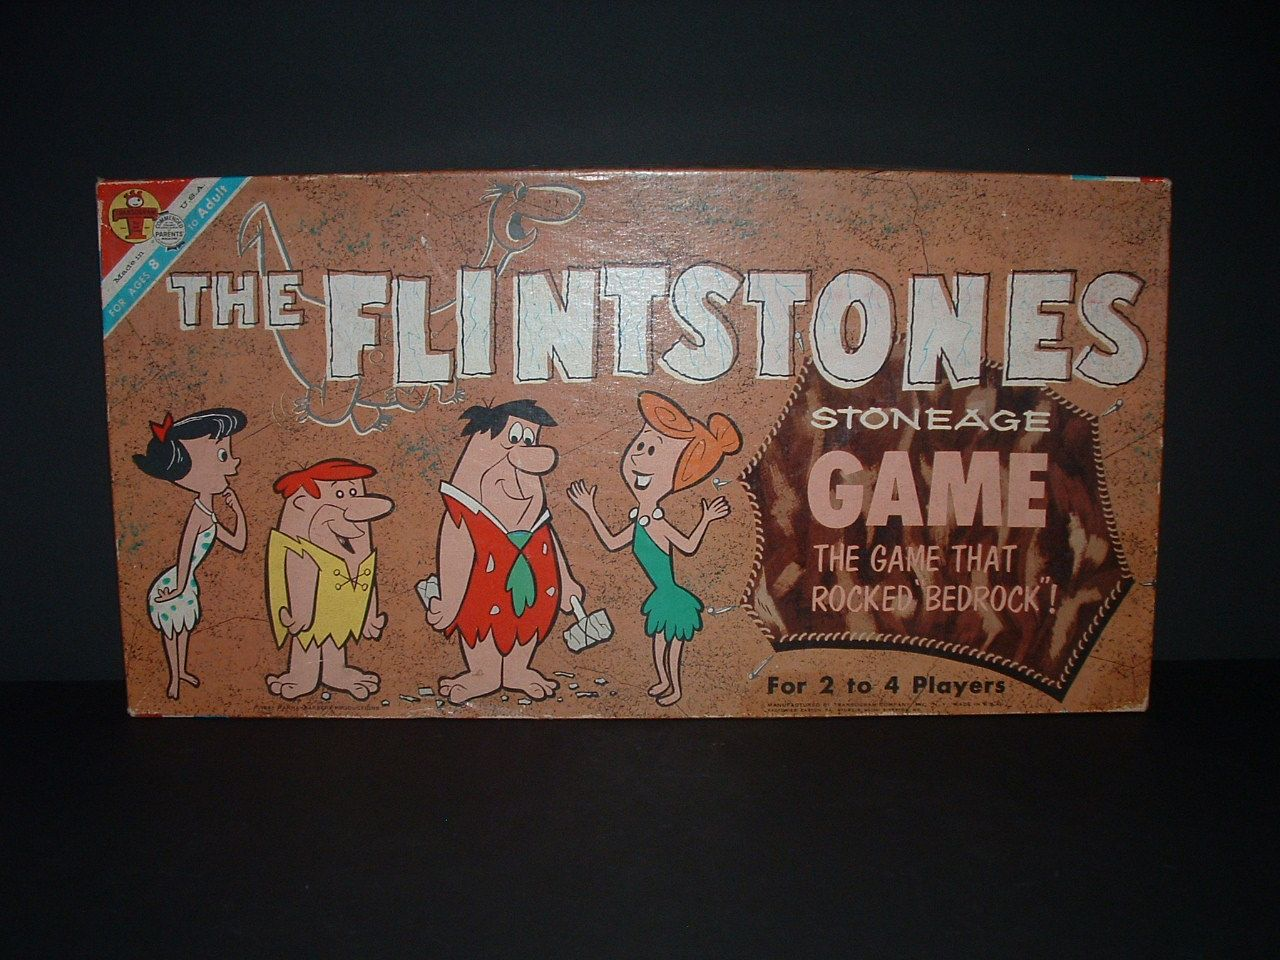 The first Flintstone game - 1961